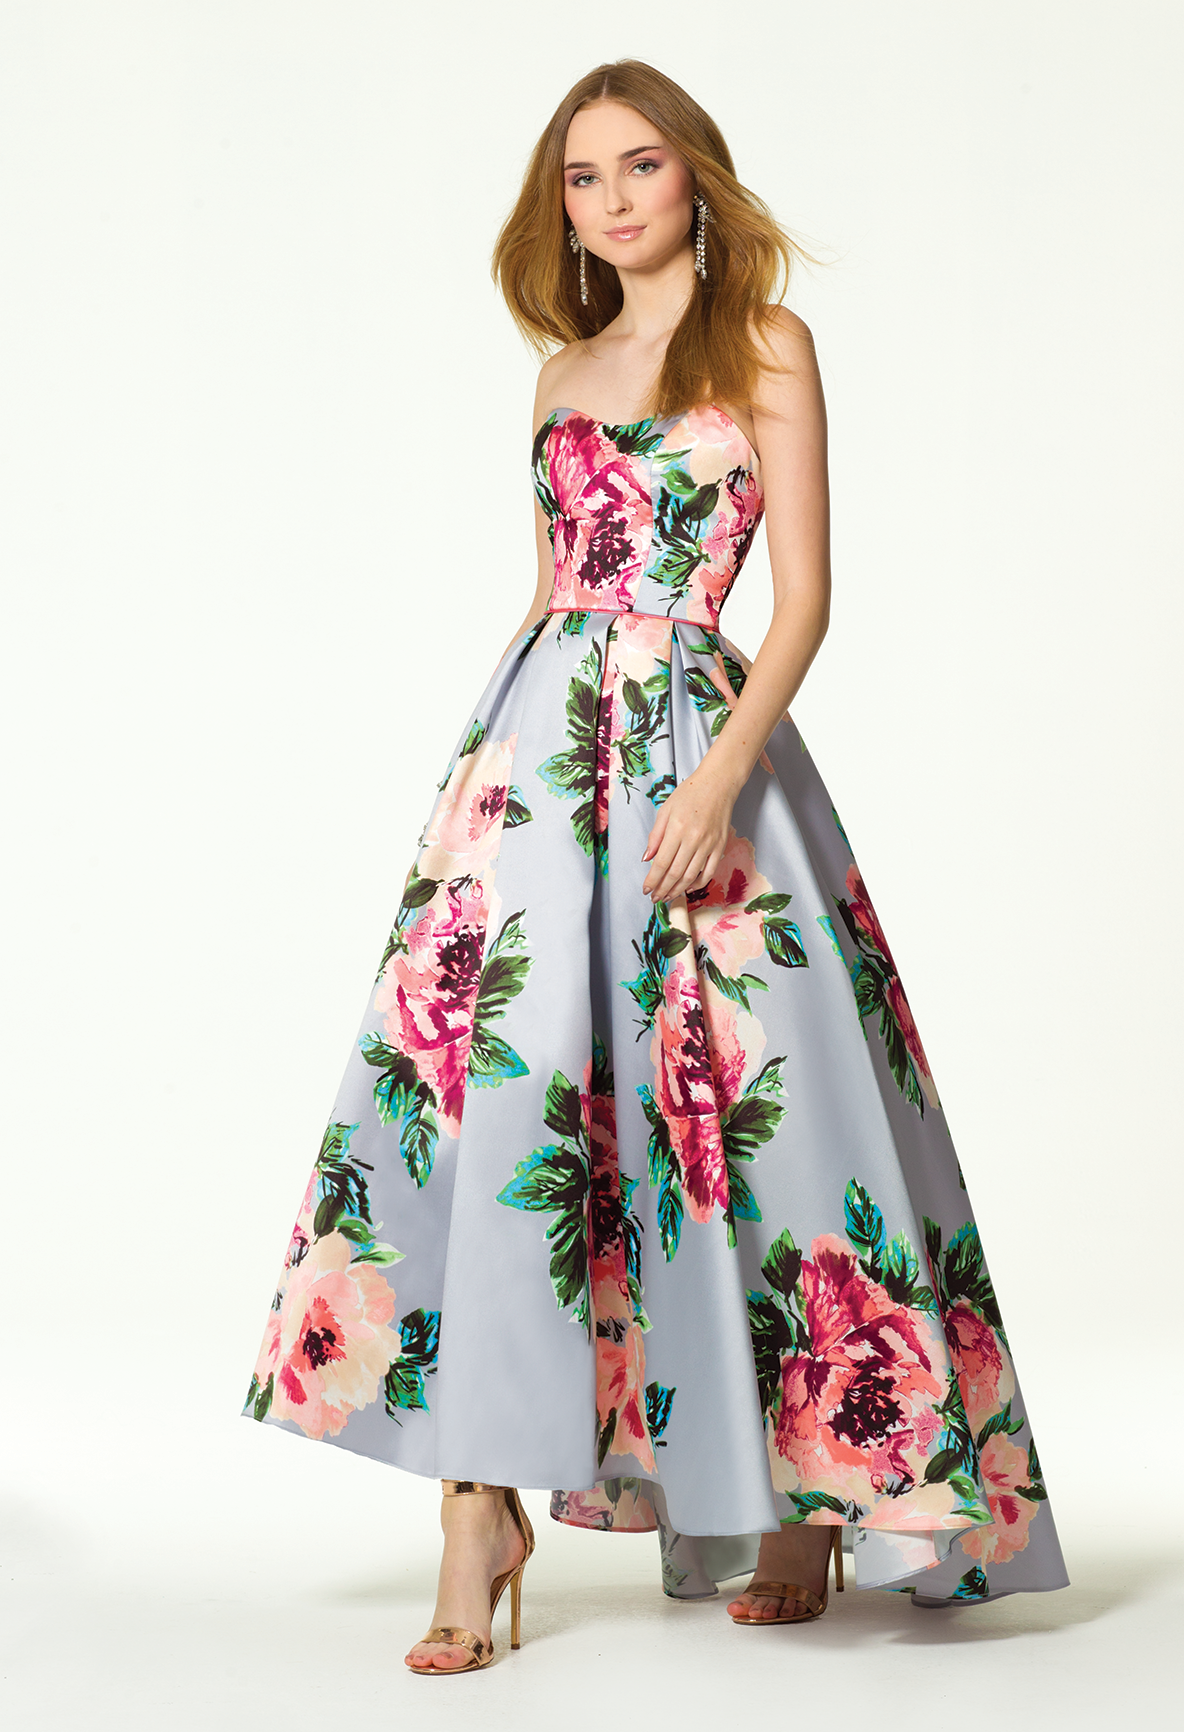 Embody All Things Feminine And Flirty With This Ball Gown Prom Dress